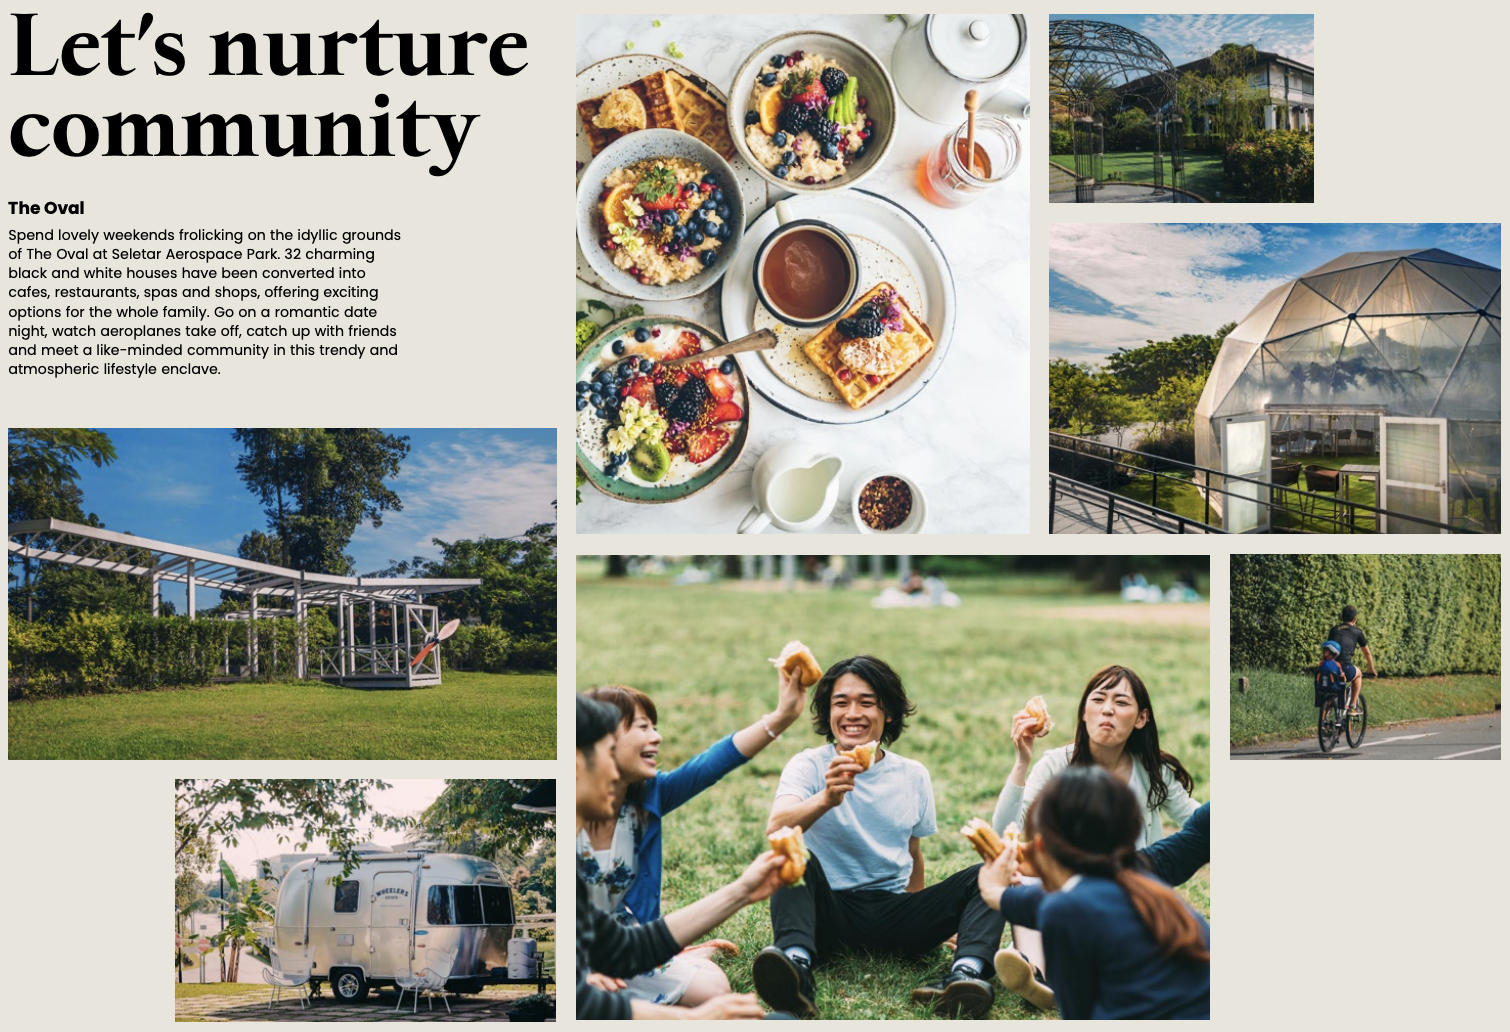 The LifeStyle Enclave of Seletar